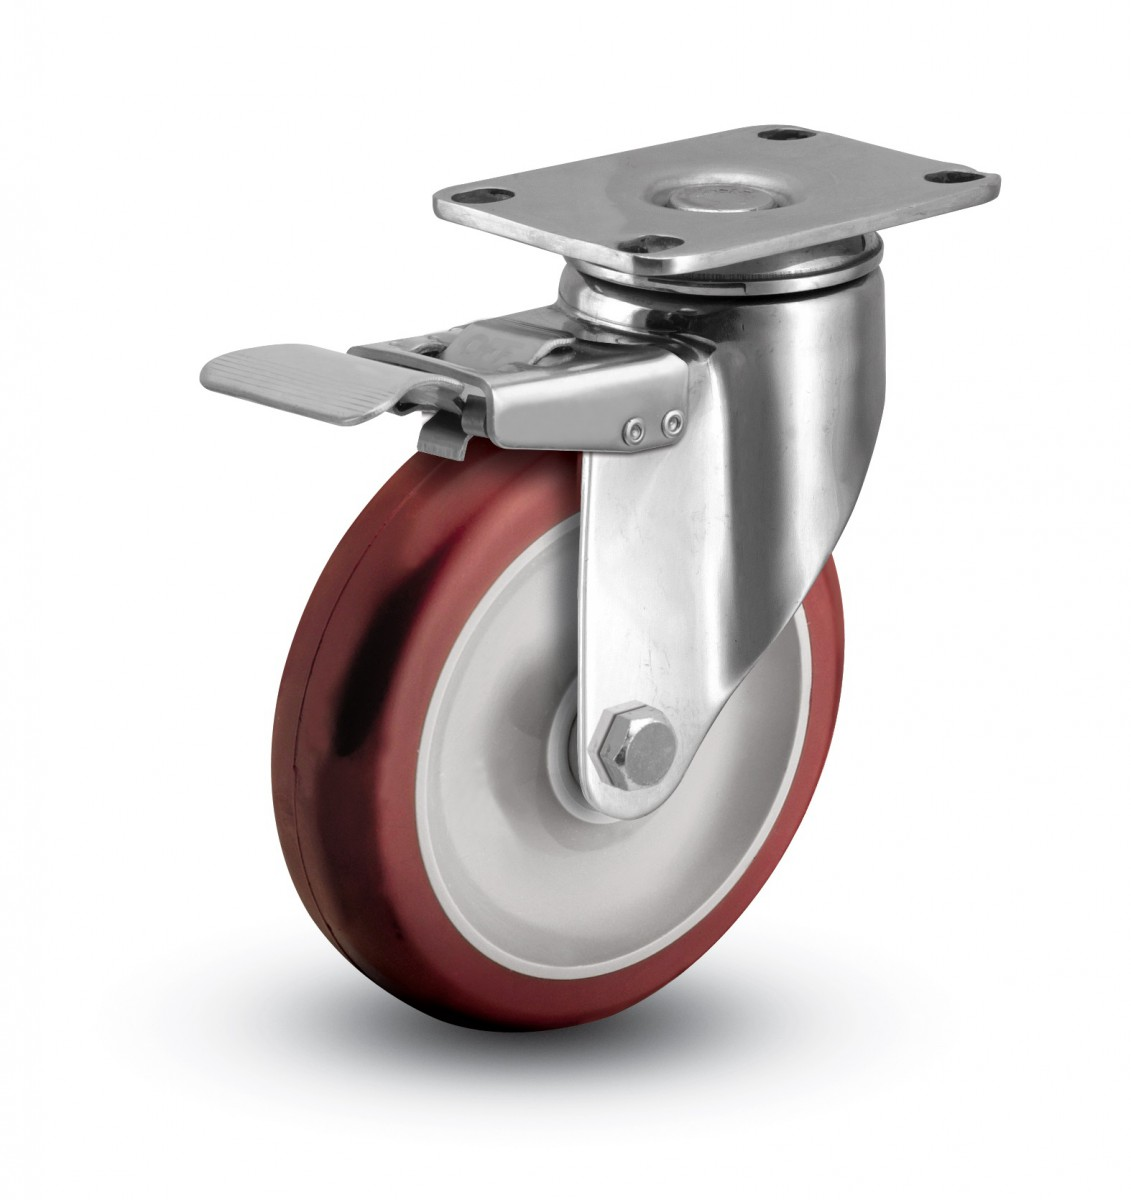 kitchen carts on wheels floor runner stainless steel casters and